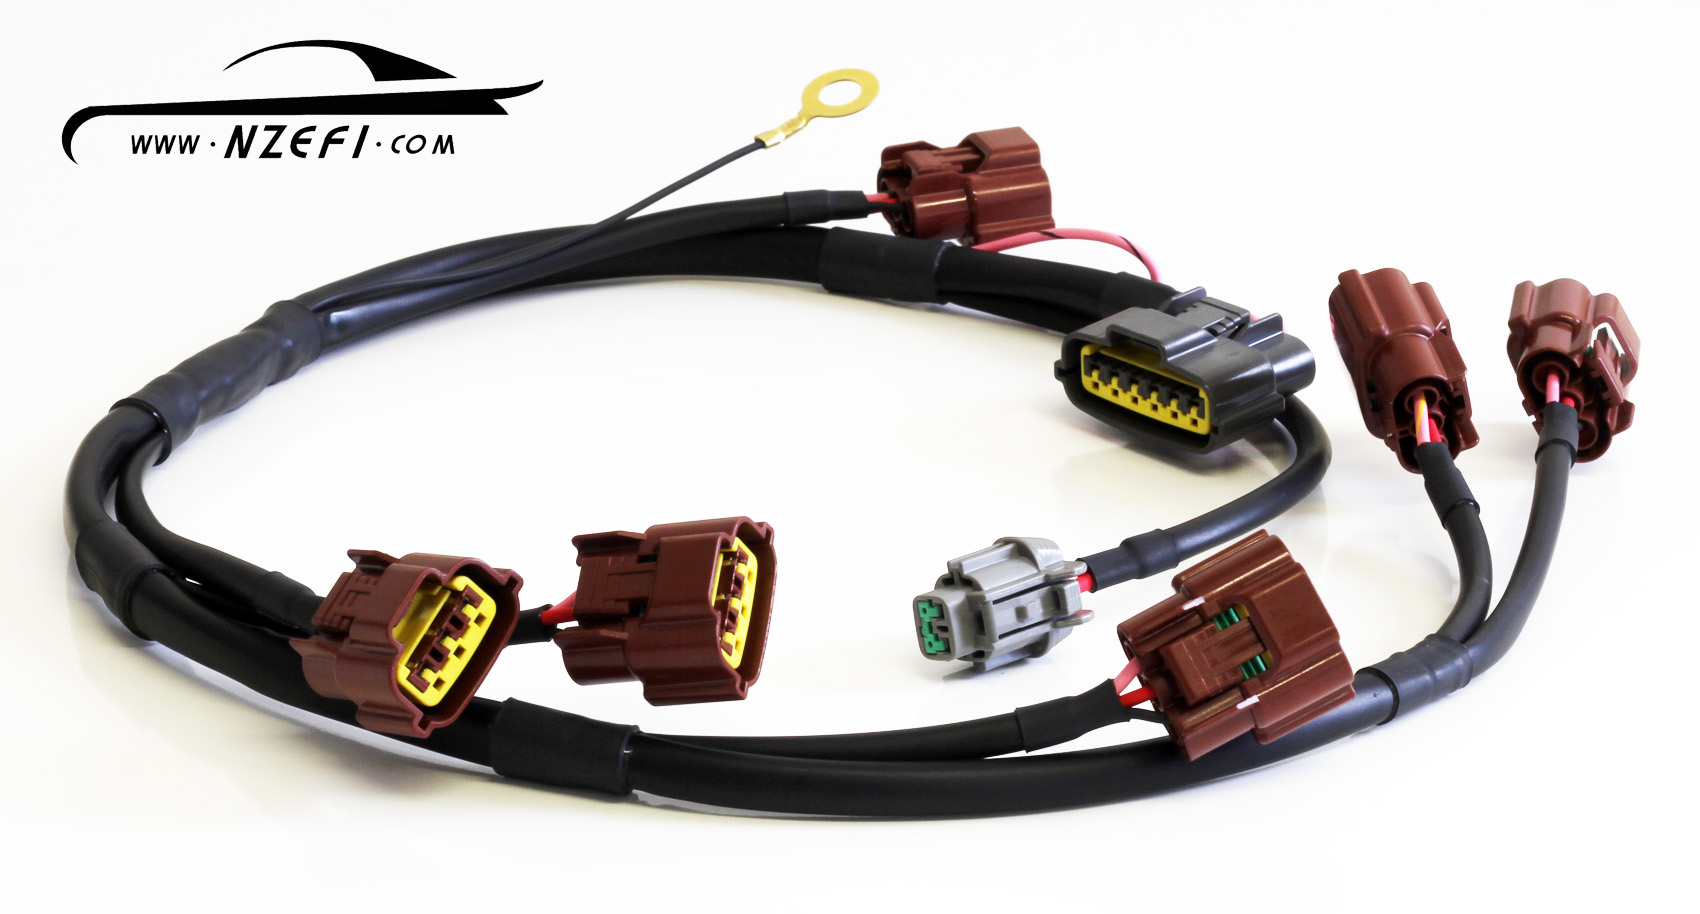 NZEFI Nissan Skyline R33 Series 1 Ignition Coil Sub Harness nissan skyline r33 s1 coil harness rb25det nzefi performance wiring harness news at couponss.co